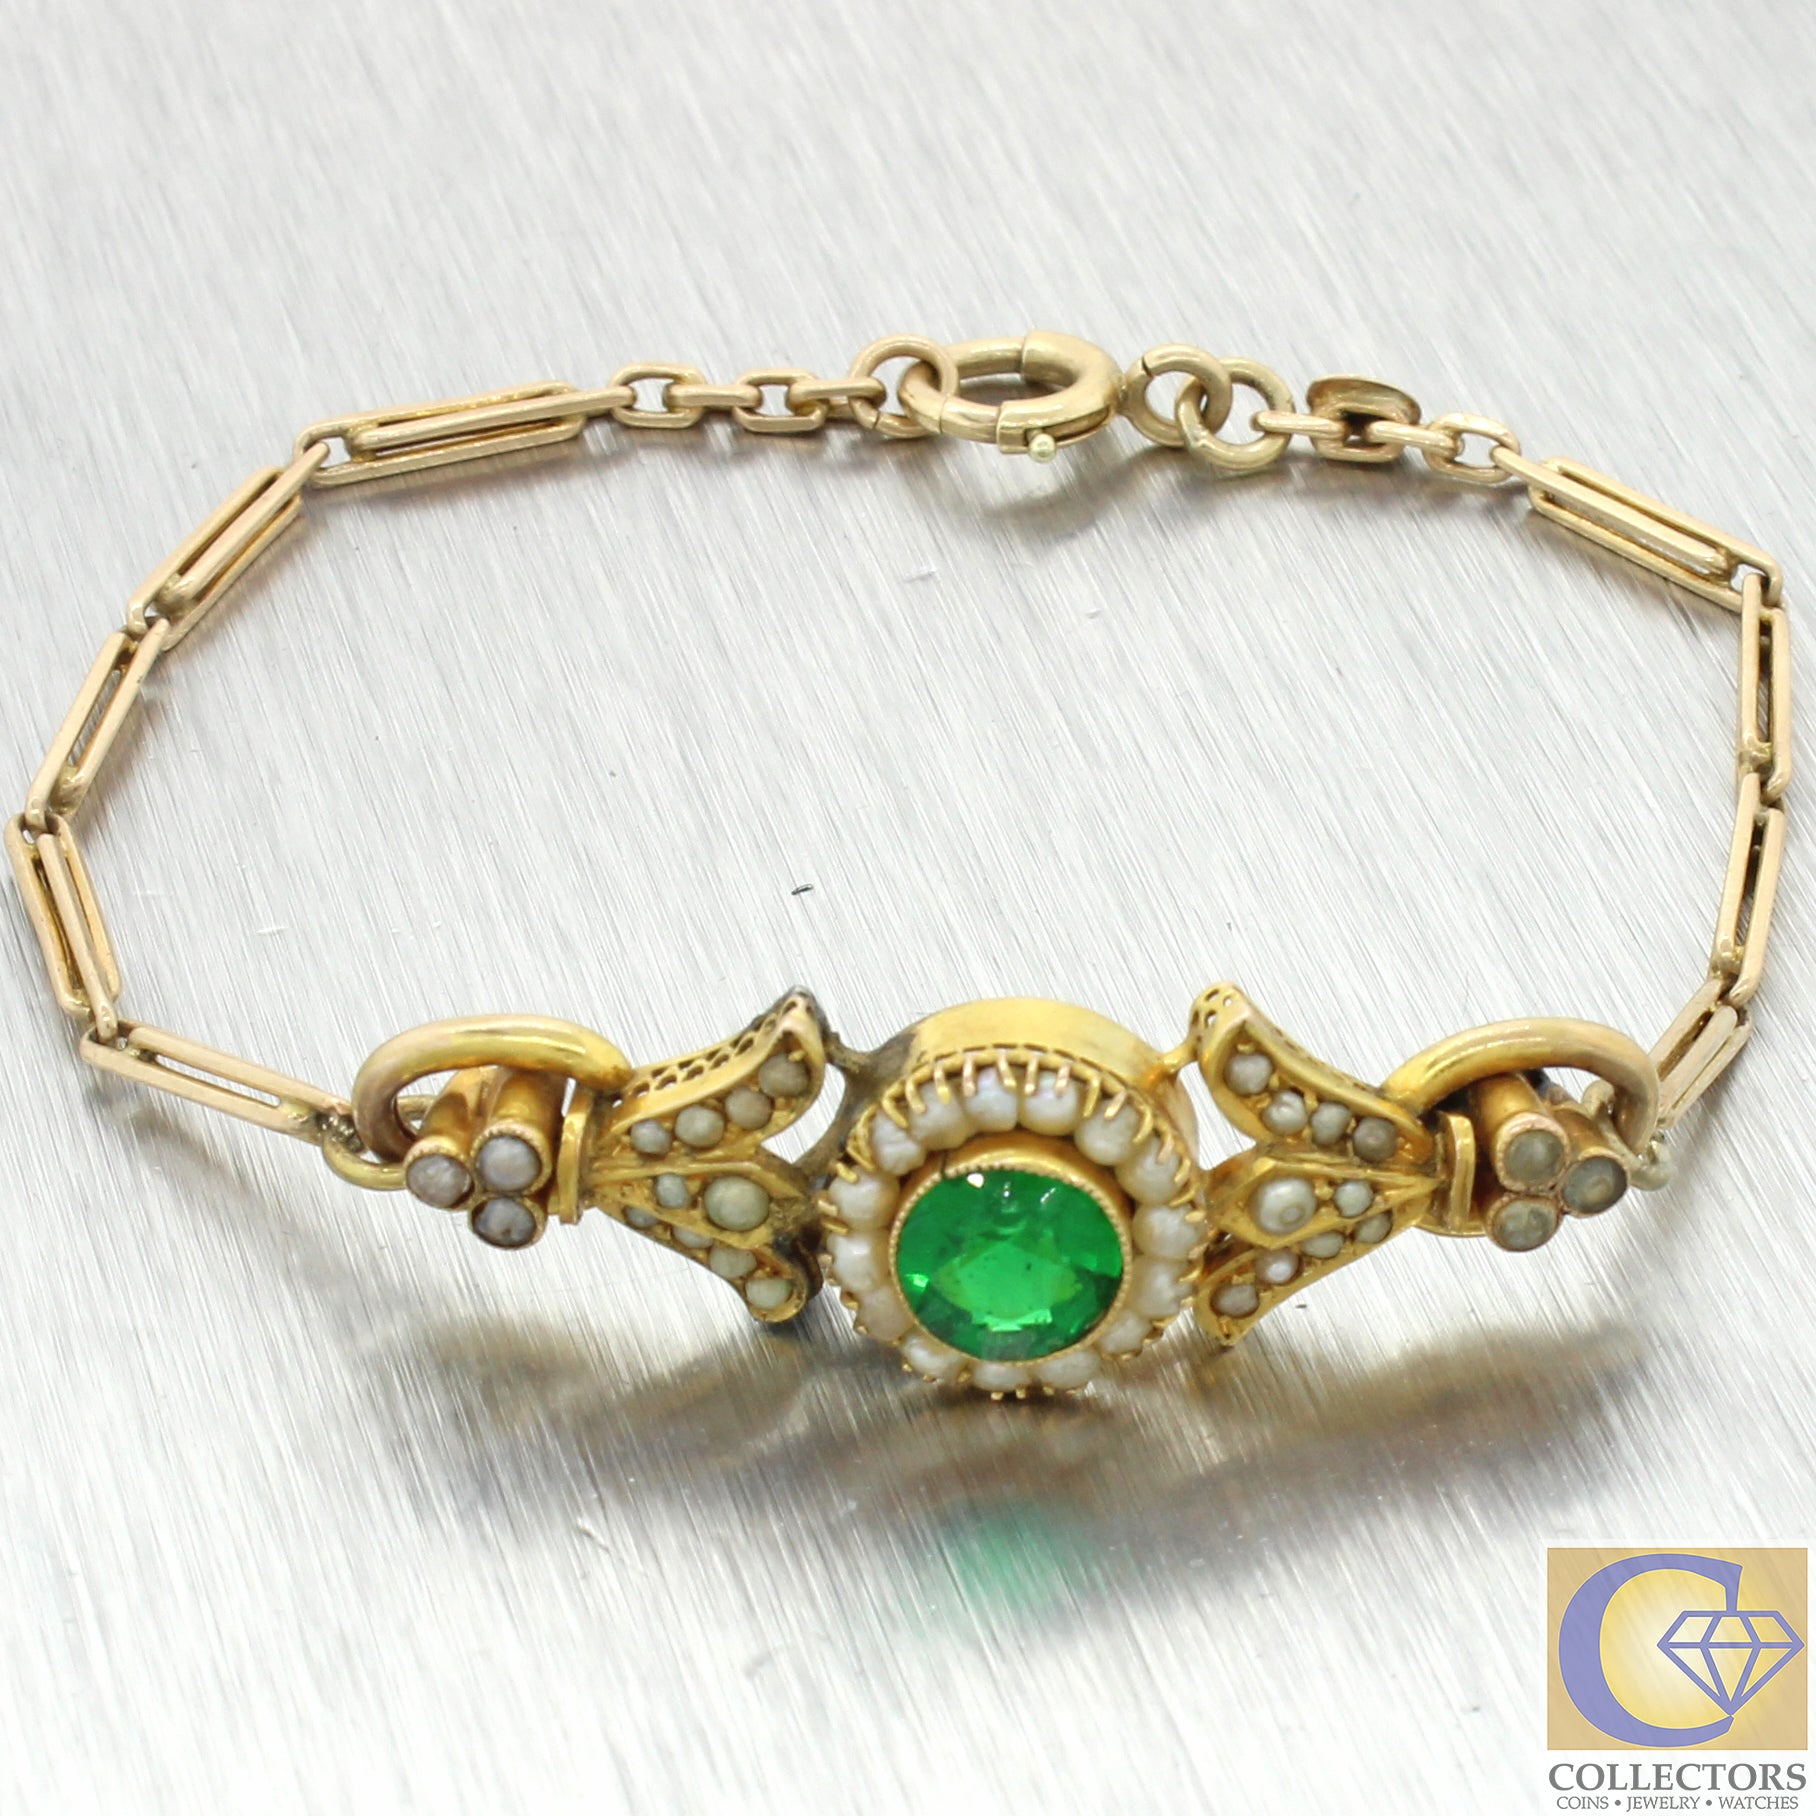 1880s Antique Victorian Estate 14k Yellow Gold Emerald Seed Pearl Bracelet